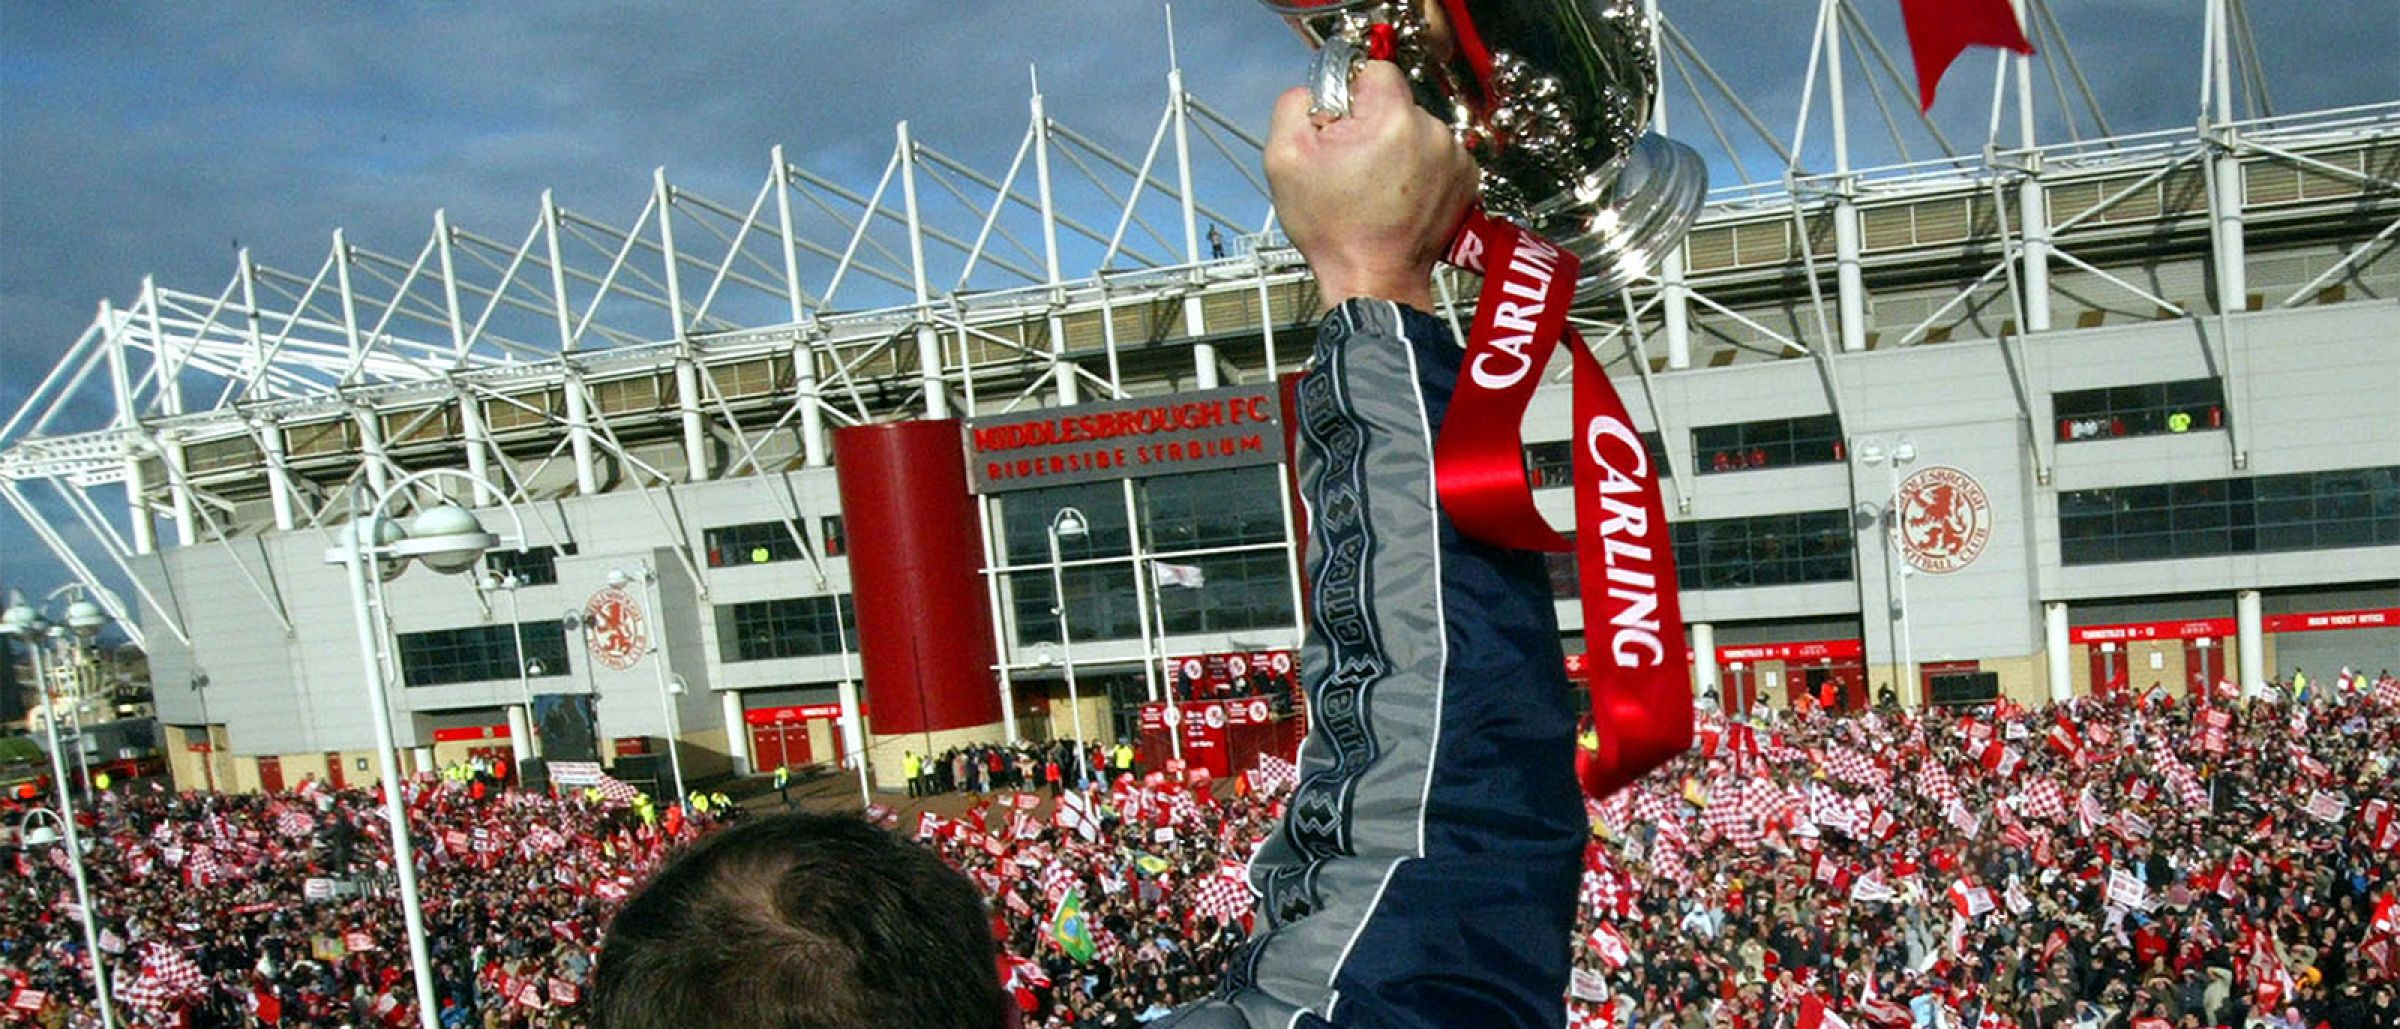 be2a26a82a9 Thousands of fans watch Boro lift the Carling Cup in front of the Riverside  Stadium